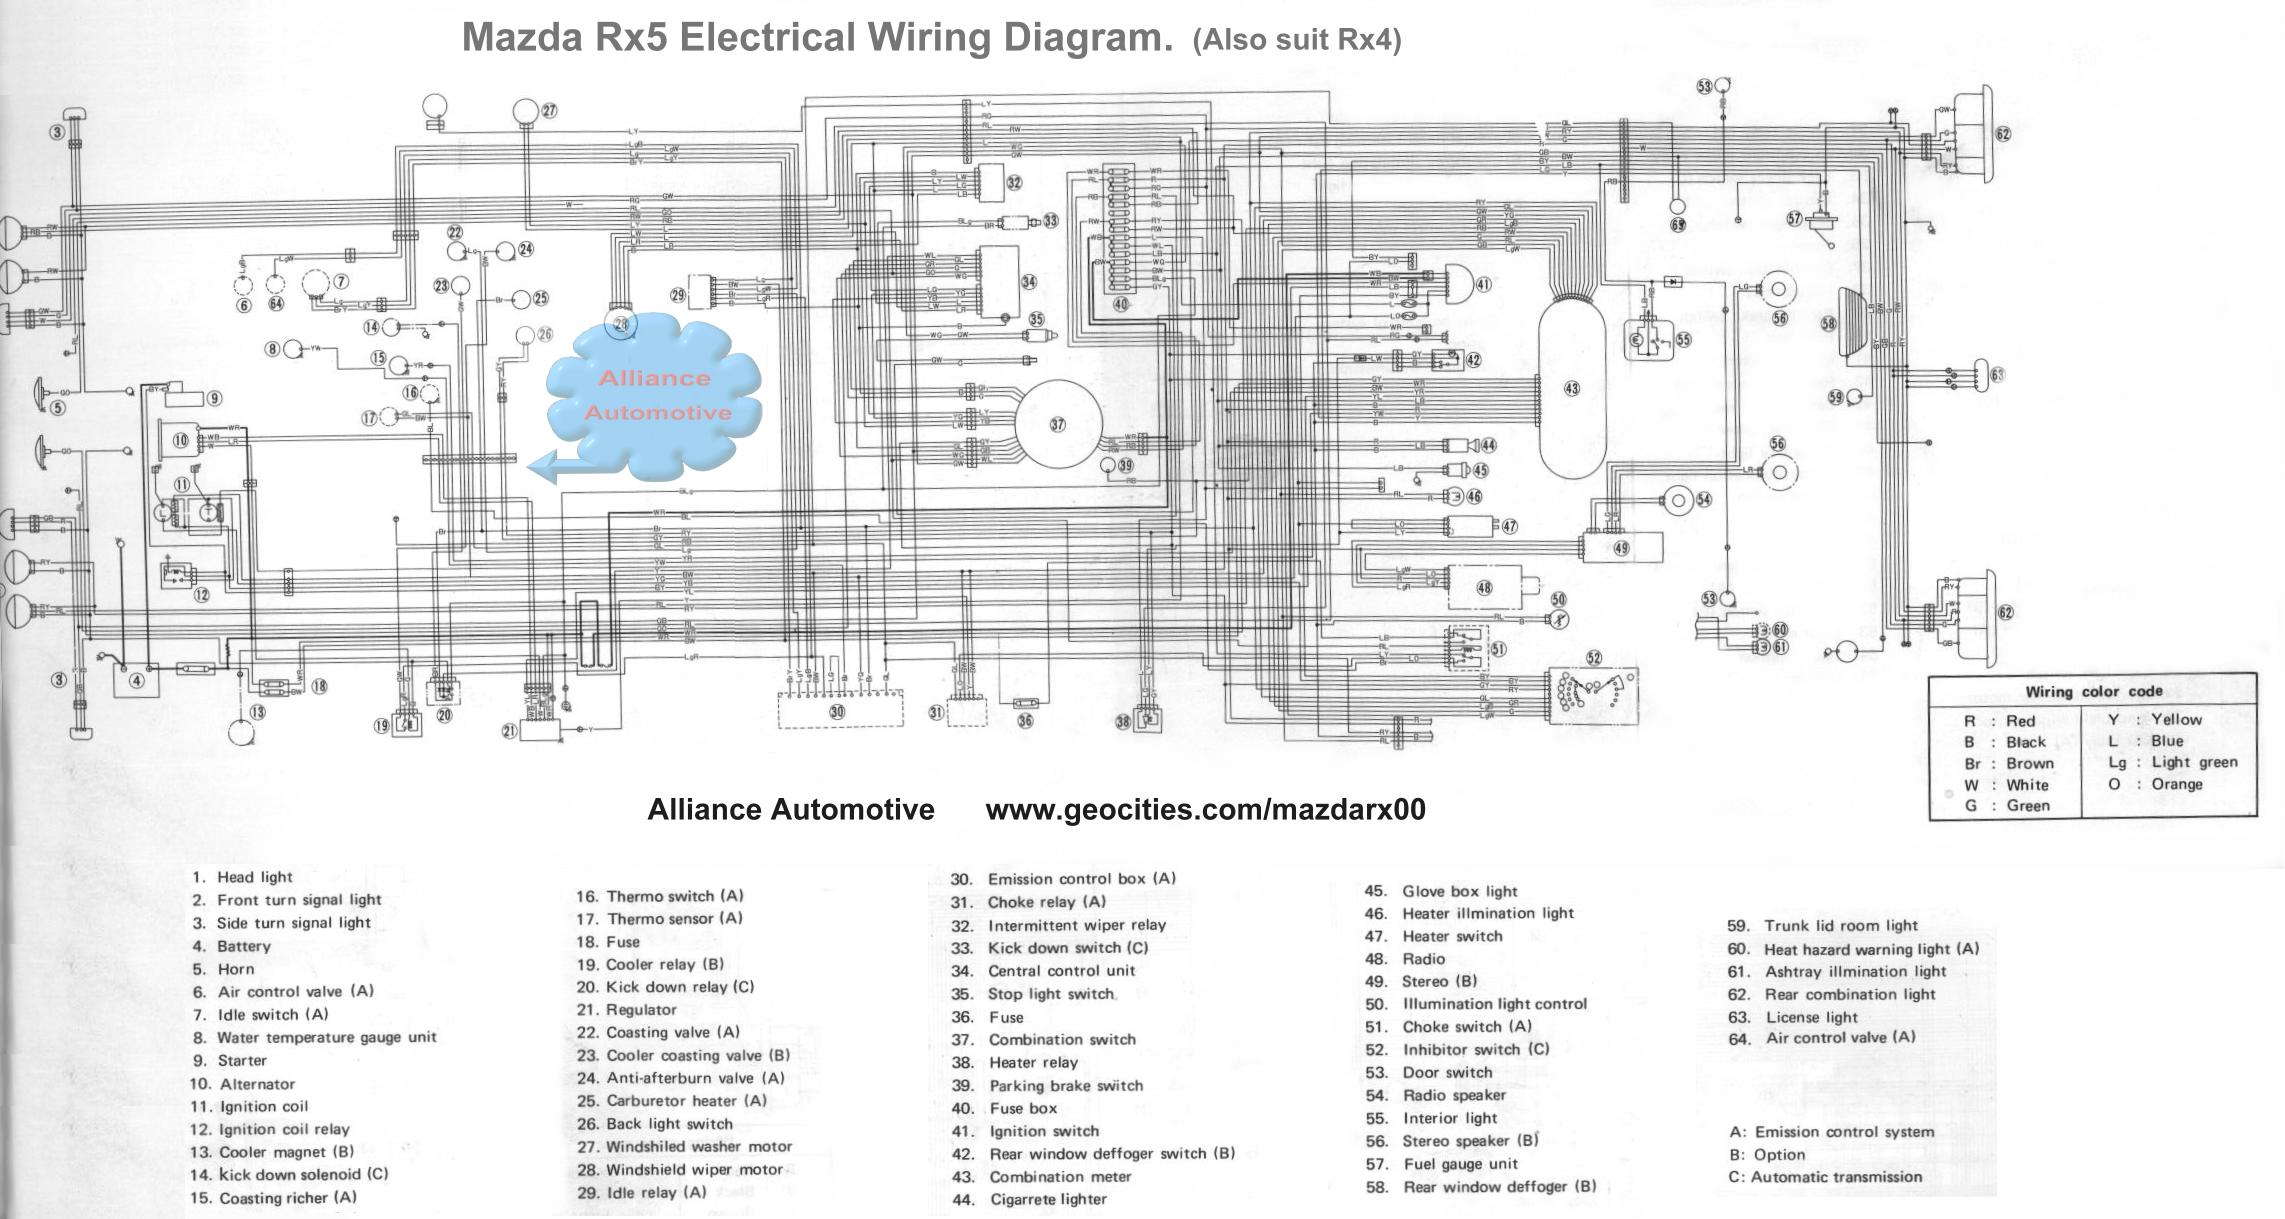 Mazda Rx3 Wiring Data Schematics Diagram Sinski How Do I Fix My Electrical Problems Rh Geocities Ws Rx100 Rx2